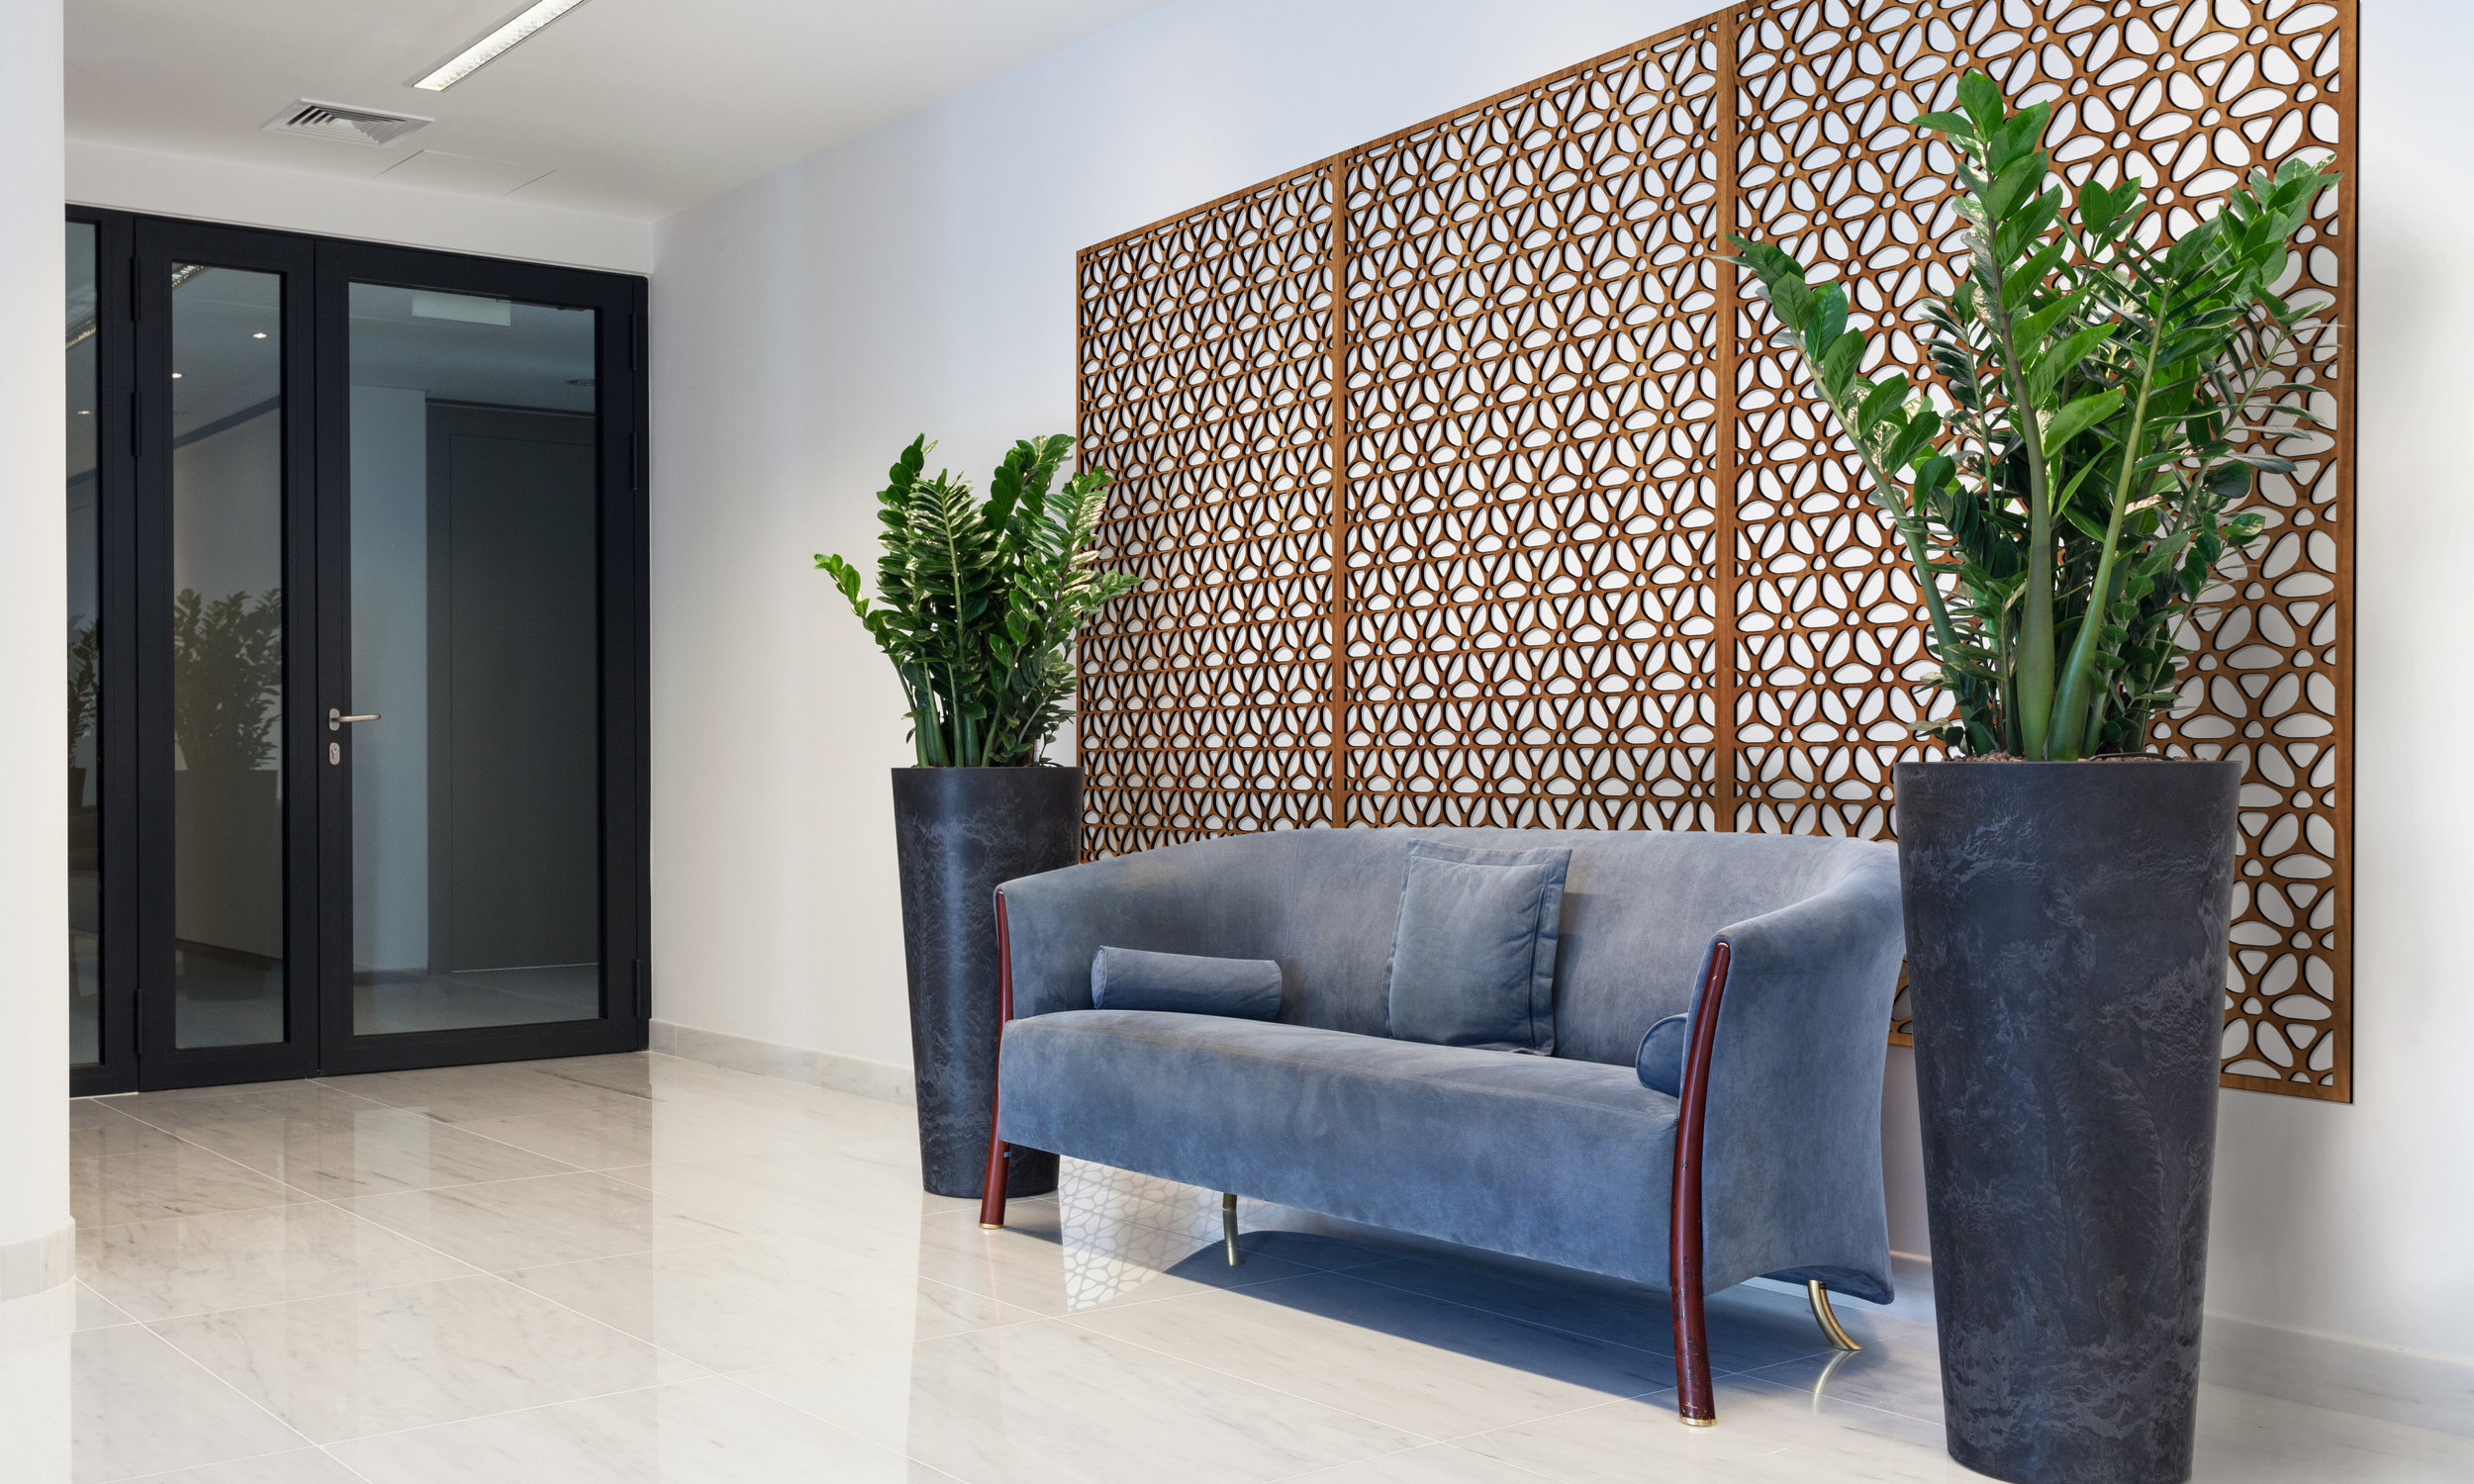 Installation Rendering A   Sao Paulo decorative office wall panel - shown in Cherry